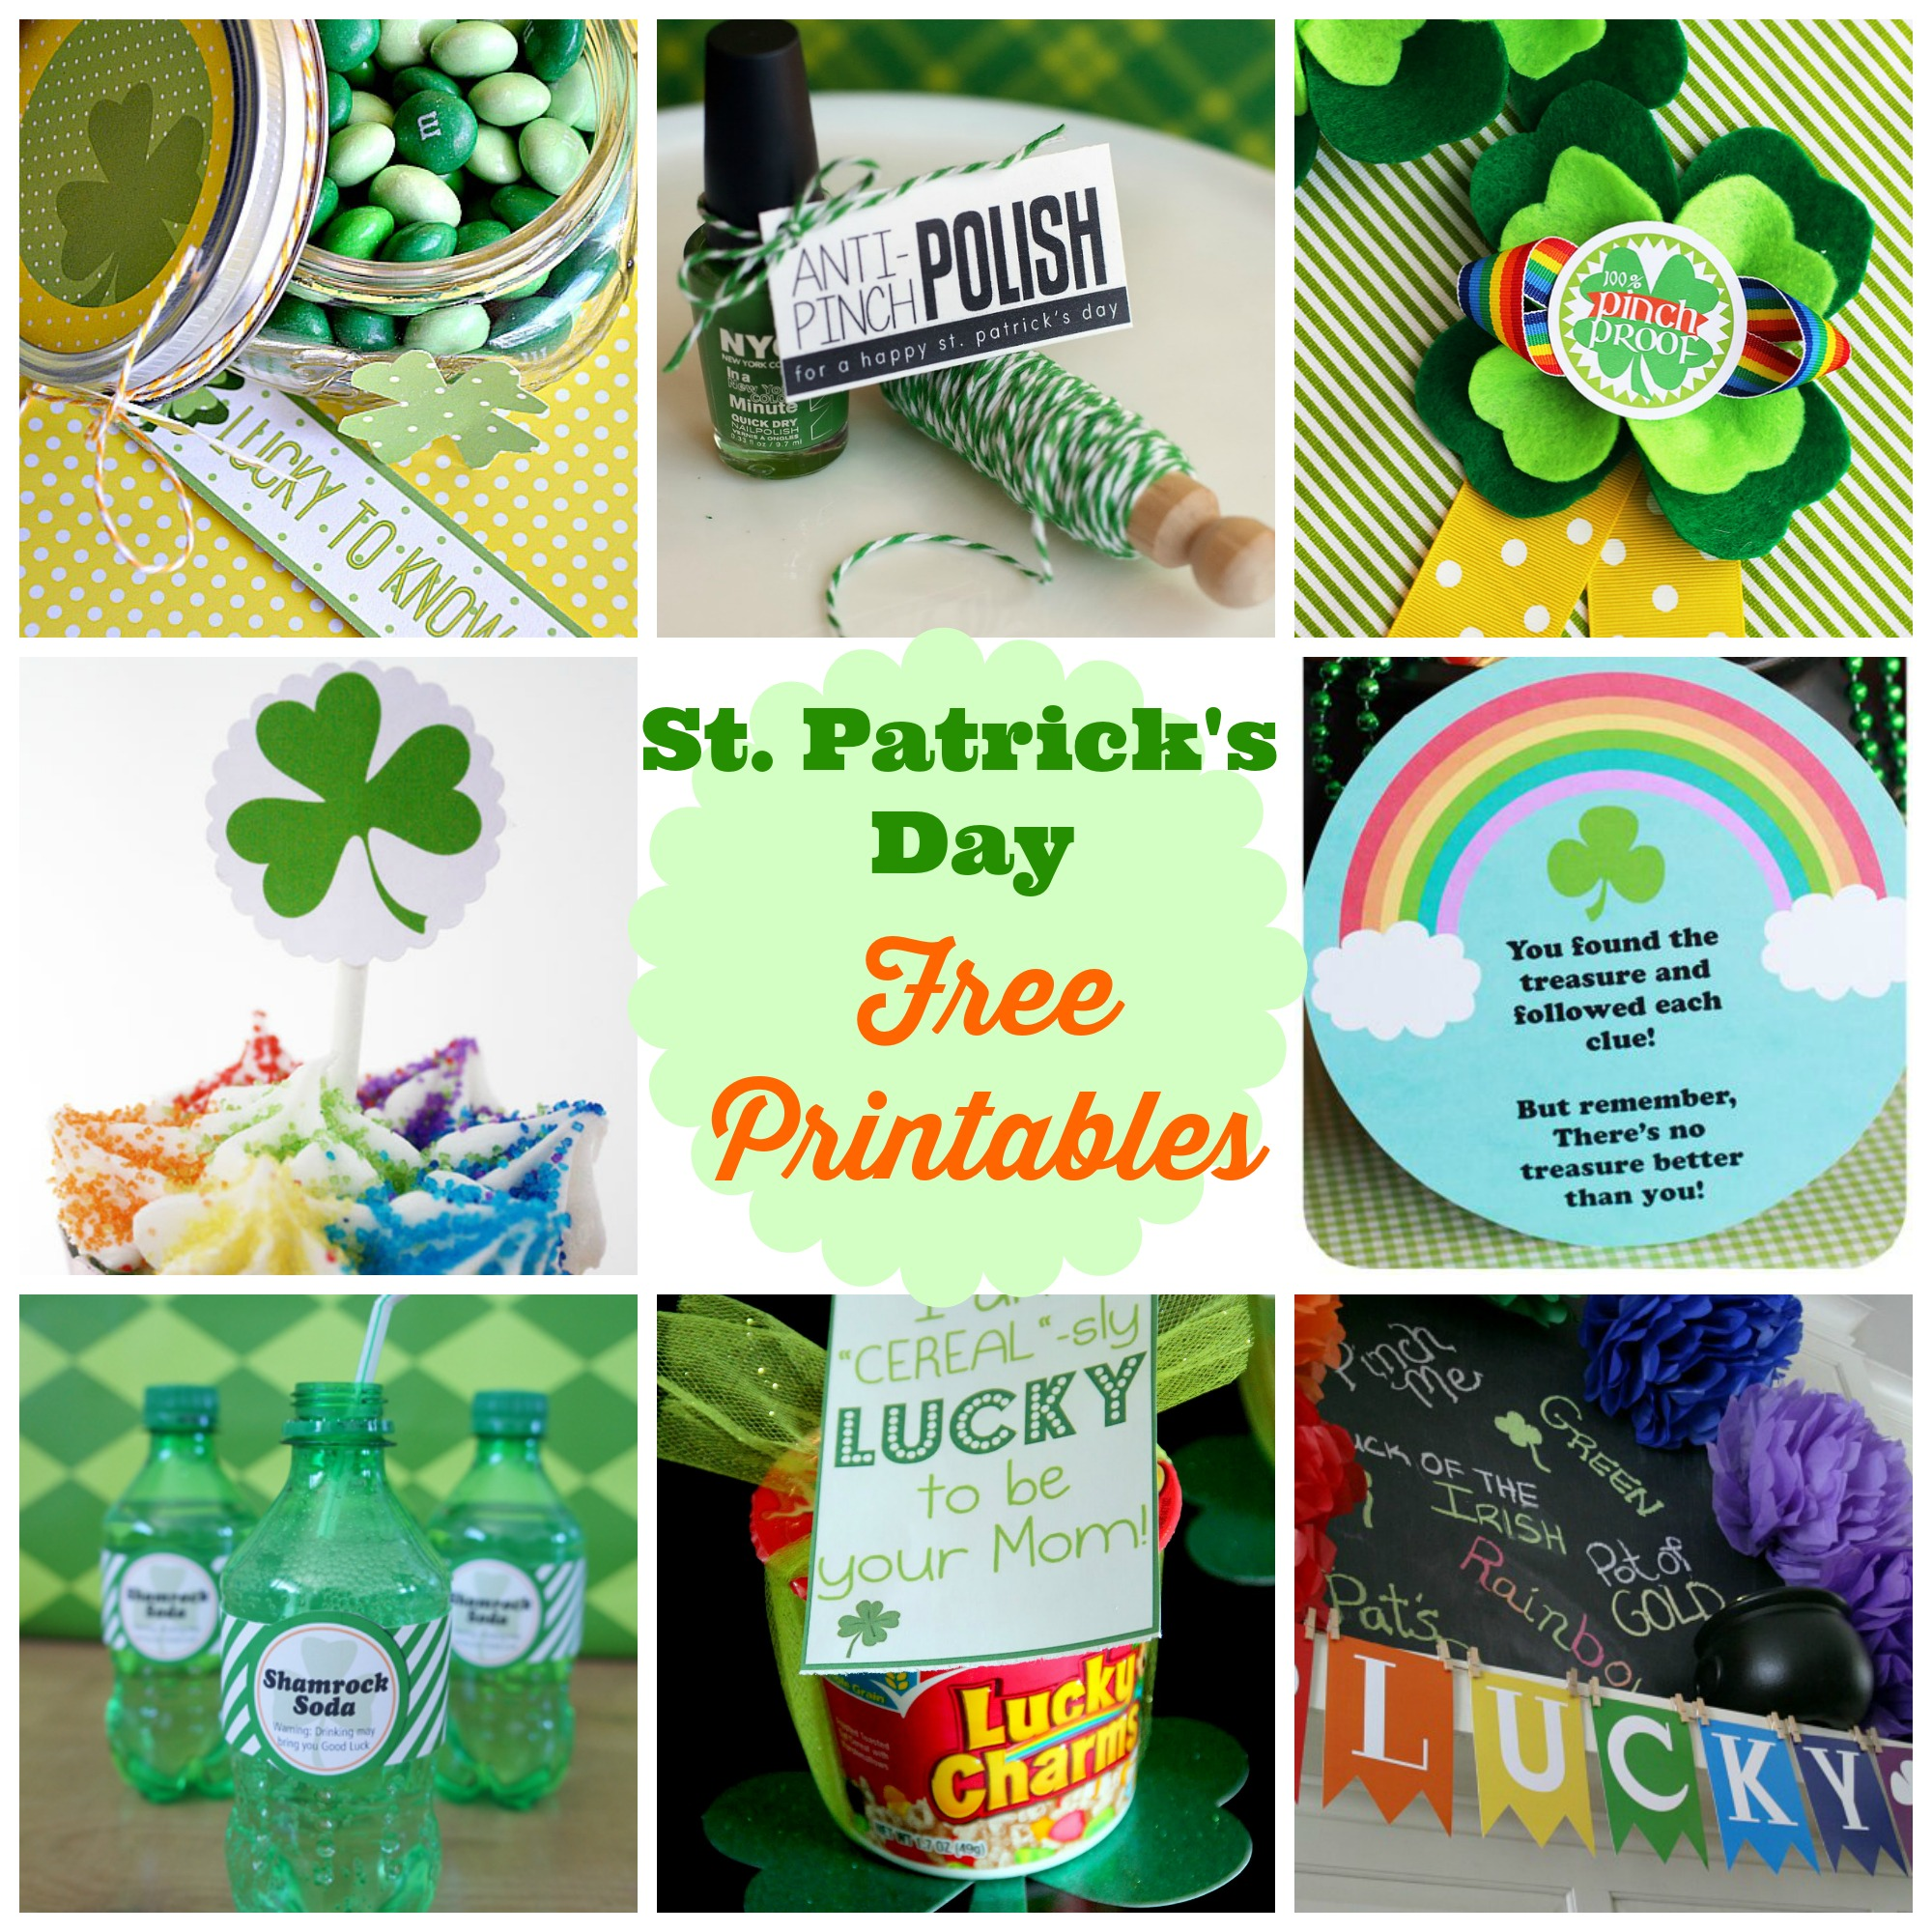 st patrick's day free printables